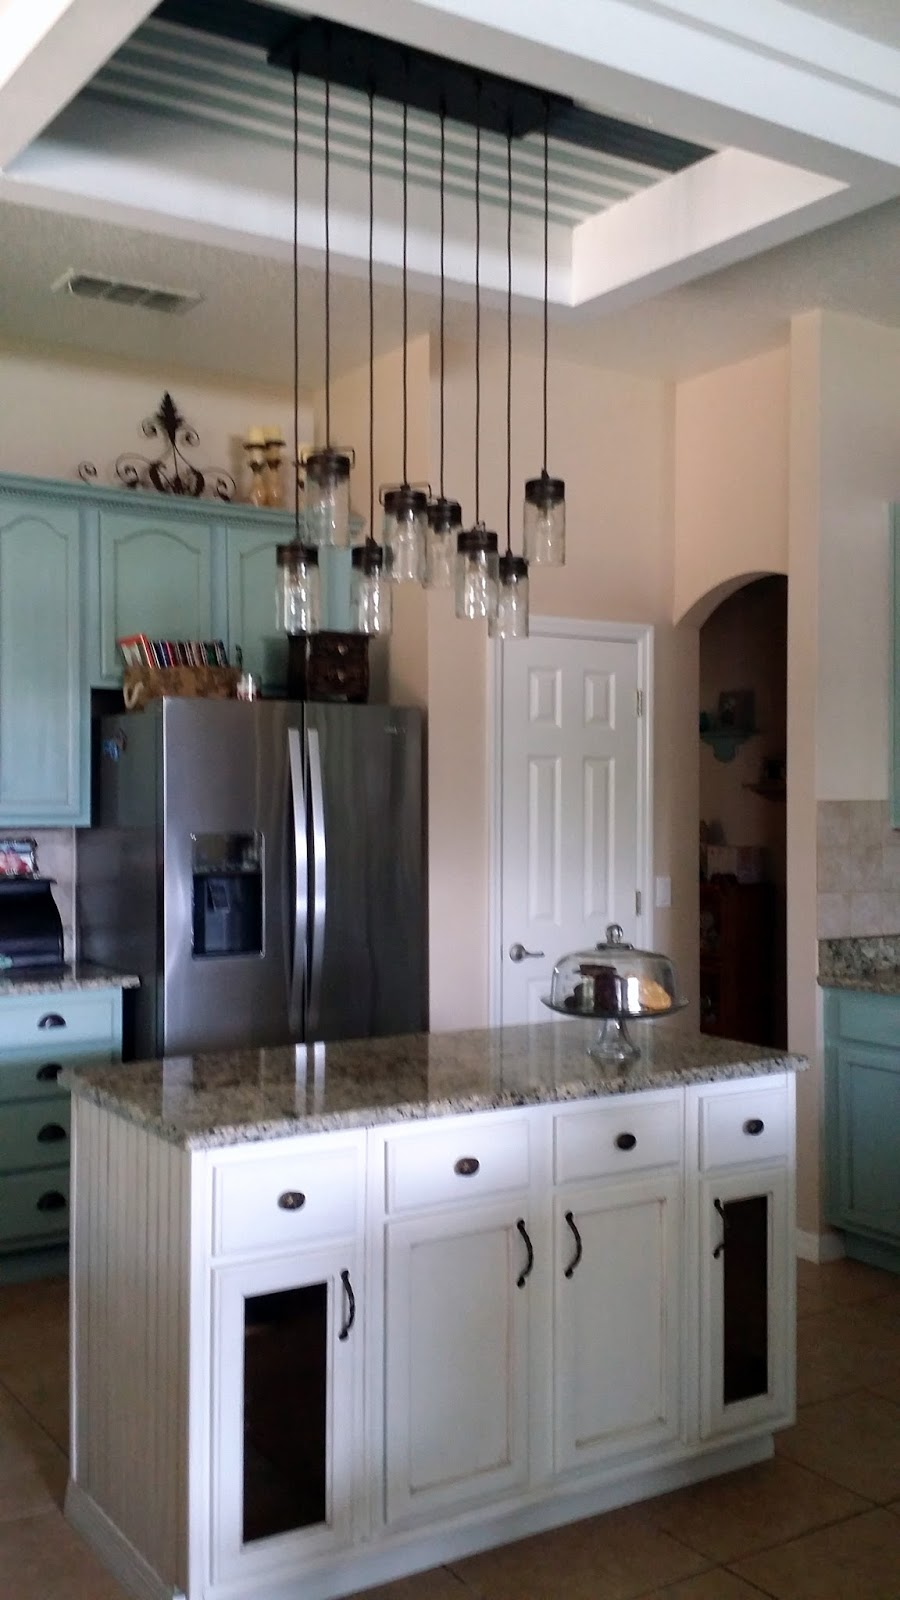 I Get So Many Questions About Our Light Fixture. It Is One Of My Favorite  Pieces In My Kitchen! What I Really Love About It Is You Can Adjust The  Height Of ...